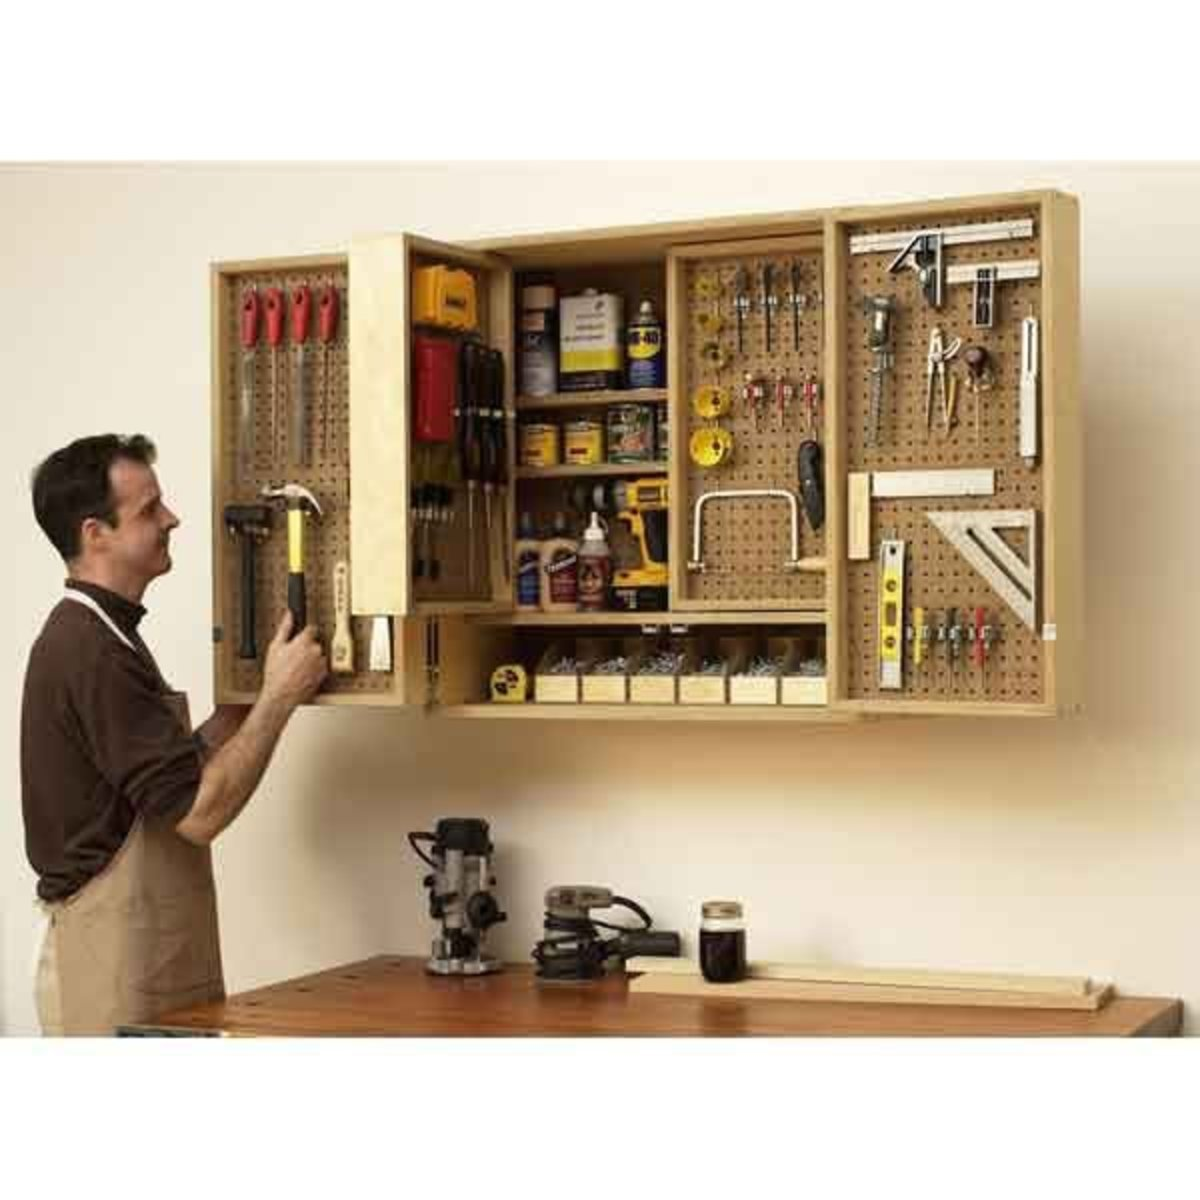 Built In Storage Cabinet Plans: Woodworking Project Paper Plan To Build